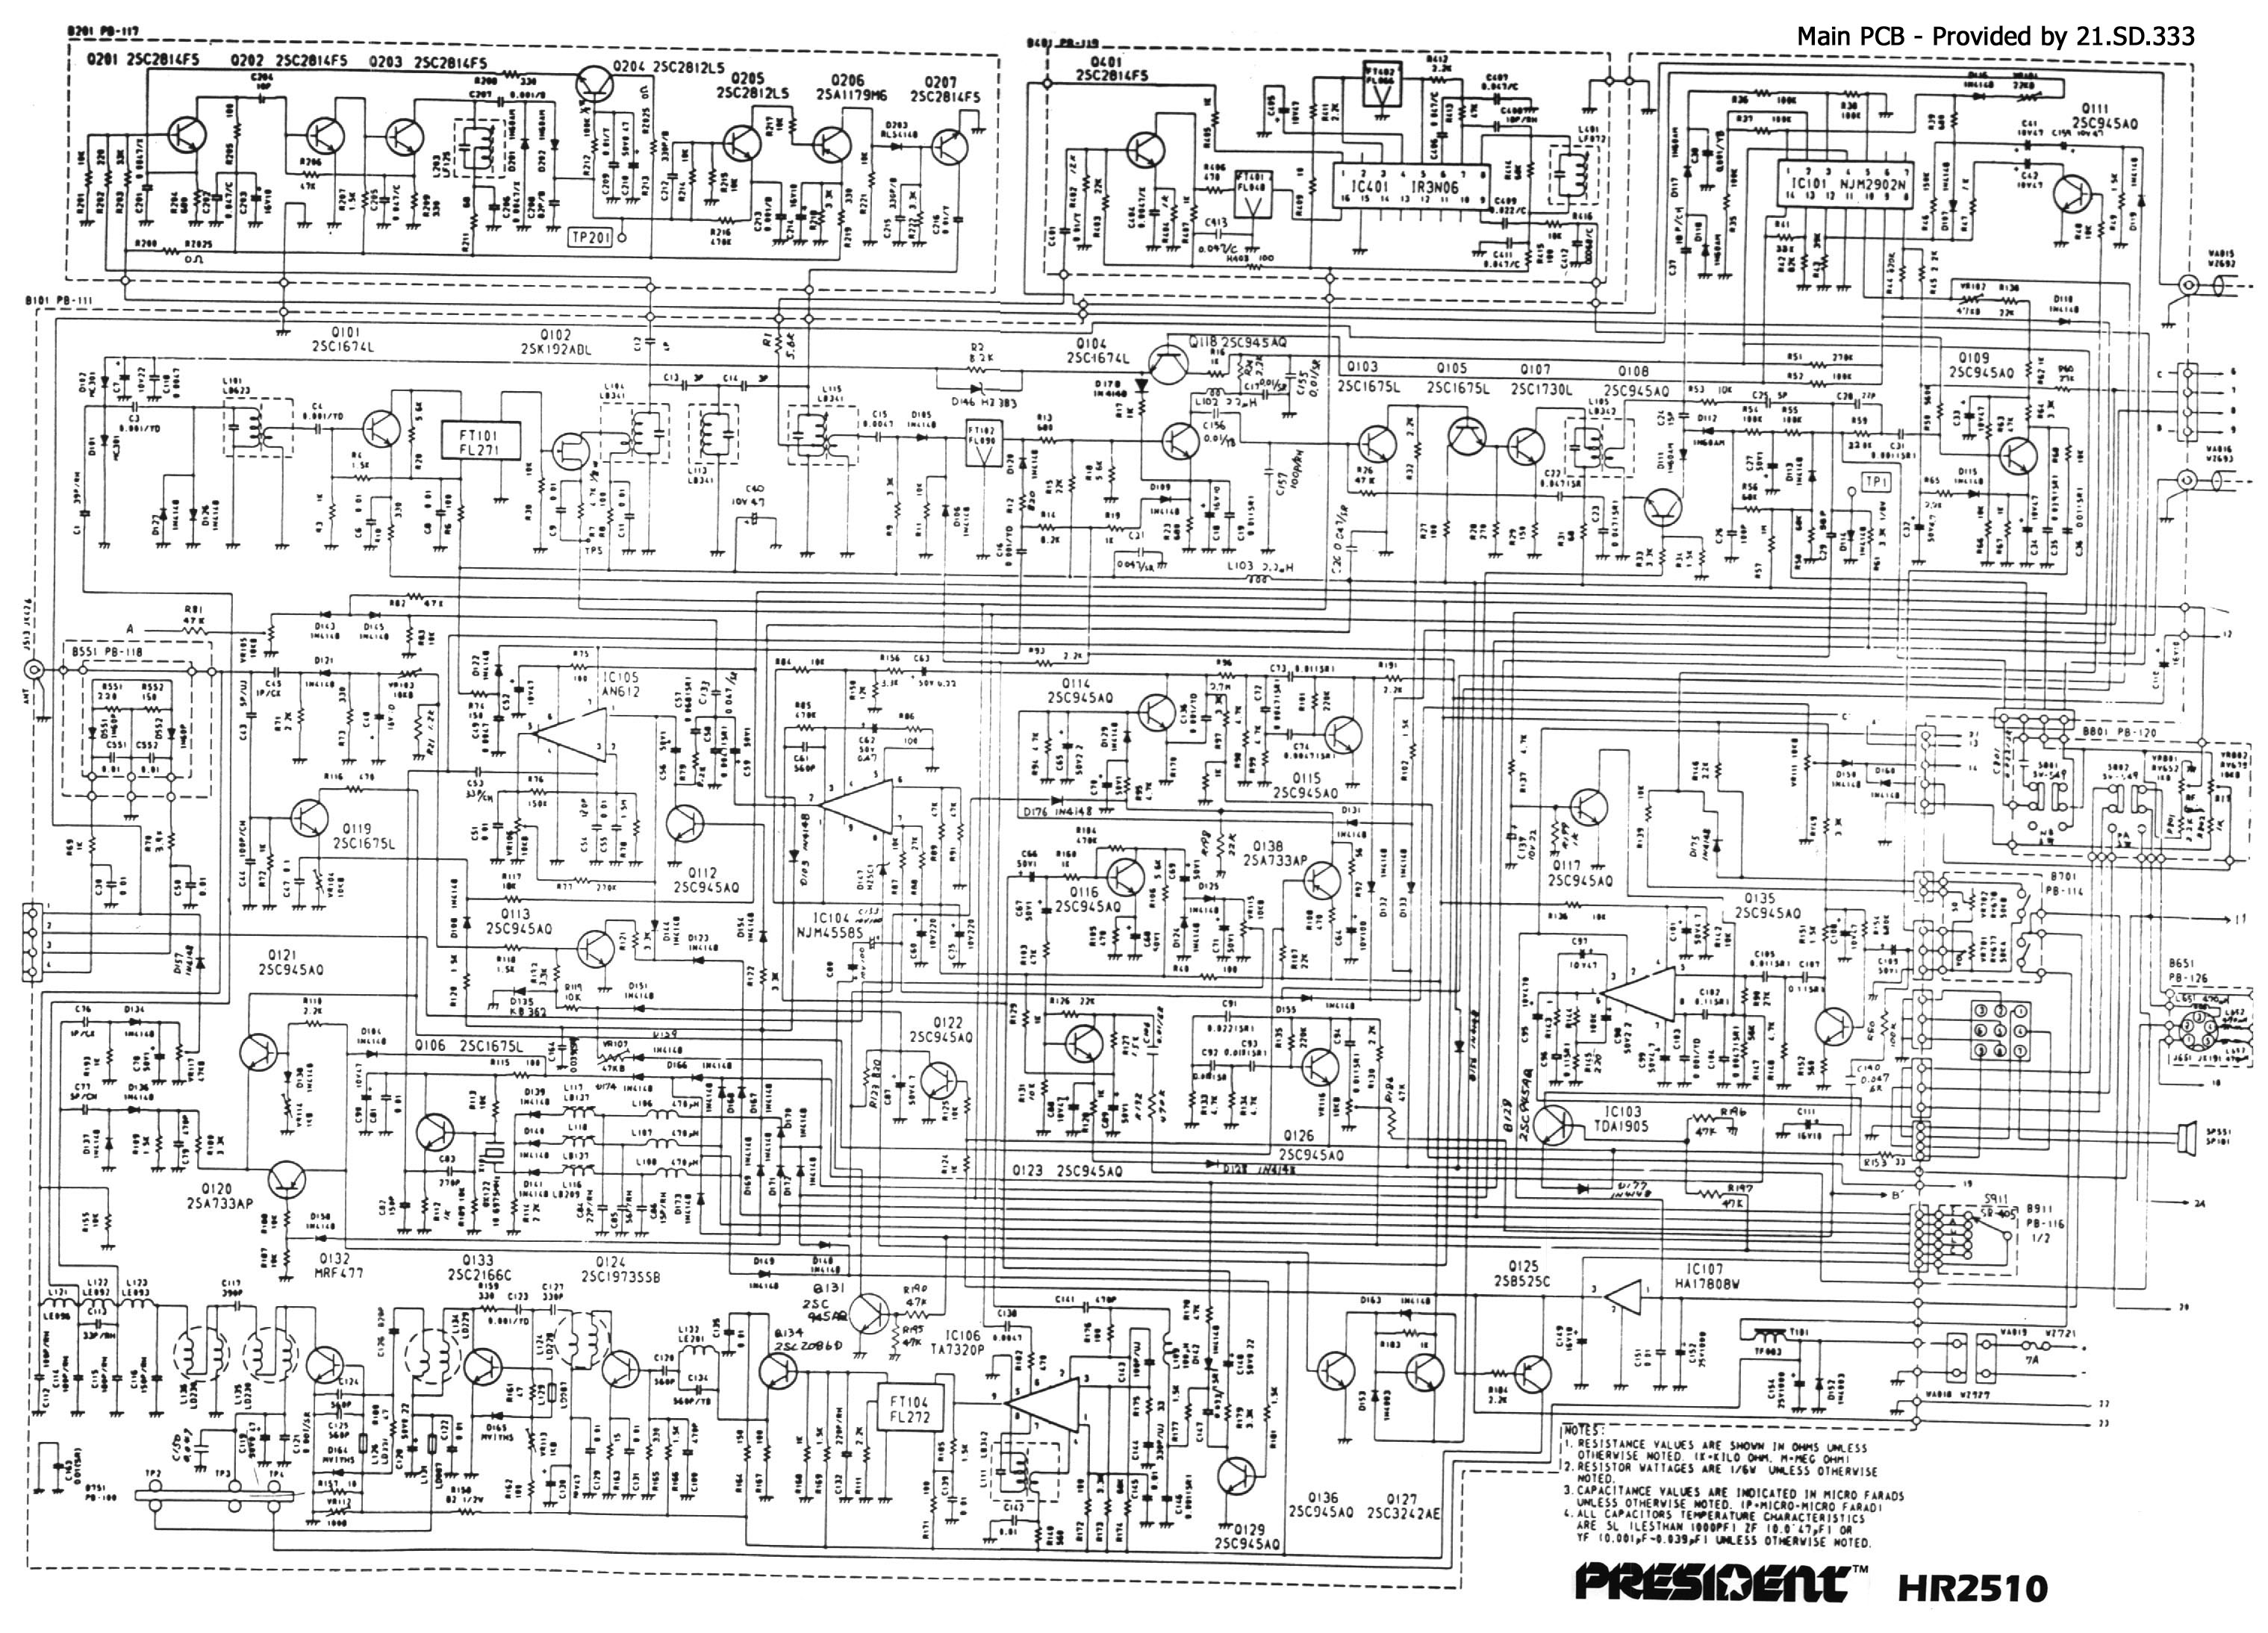 Lovely Circuit Board Drawing Ideas - Electrical Circuit Diagram ...